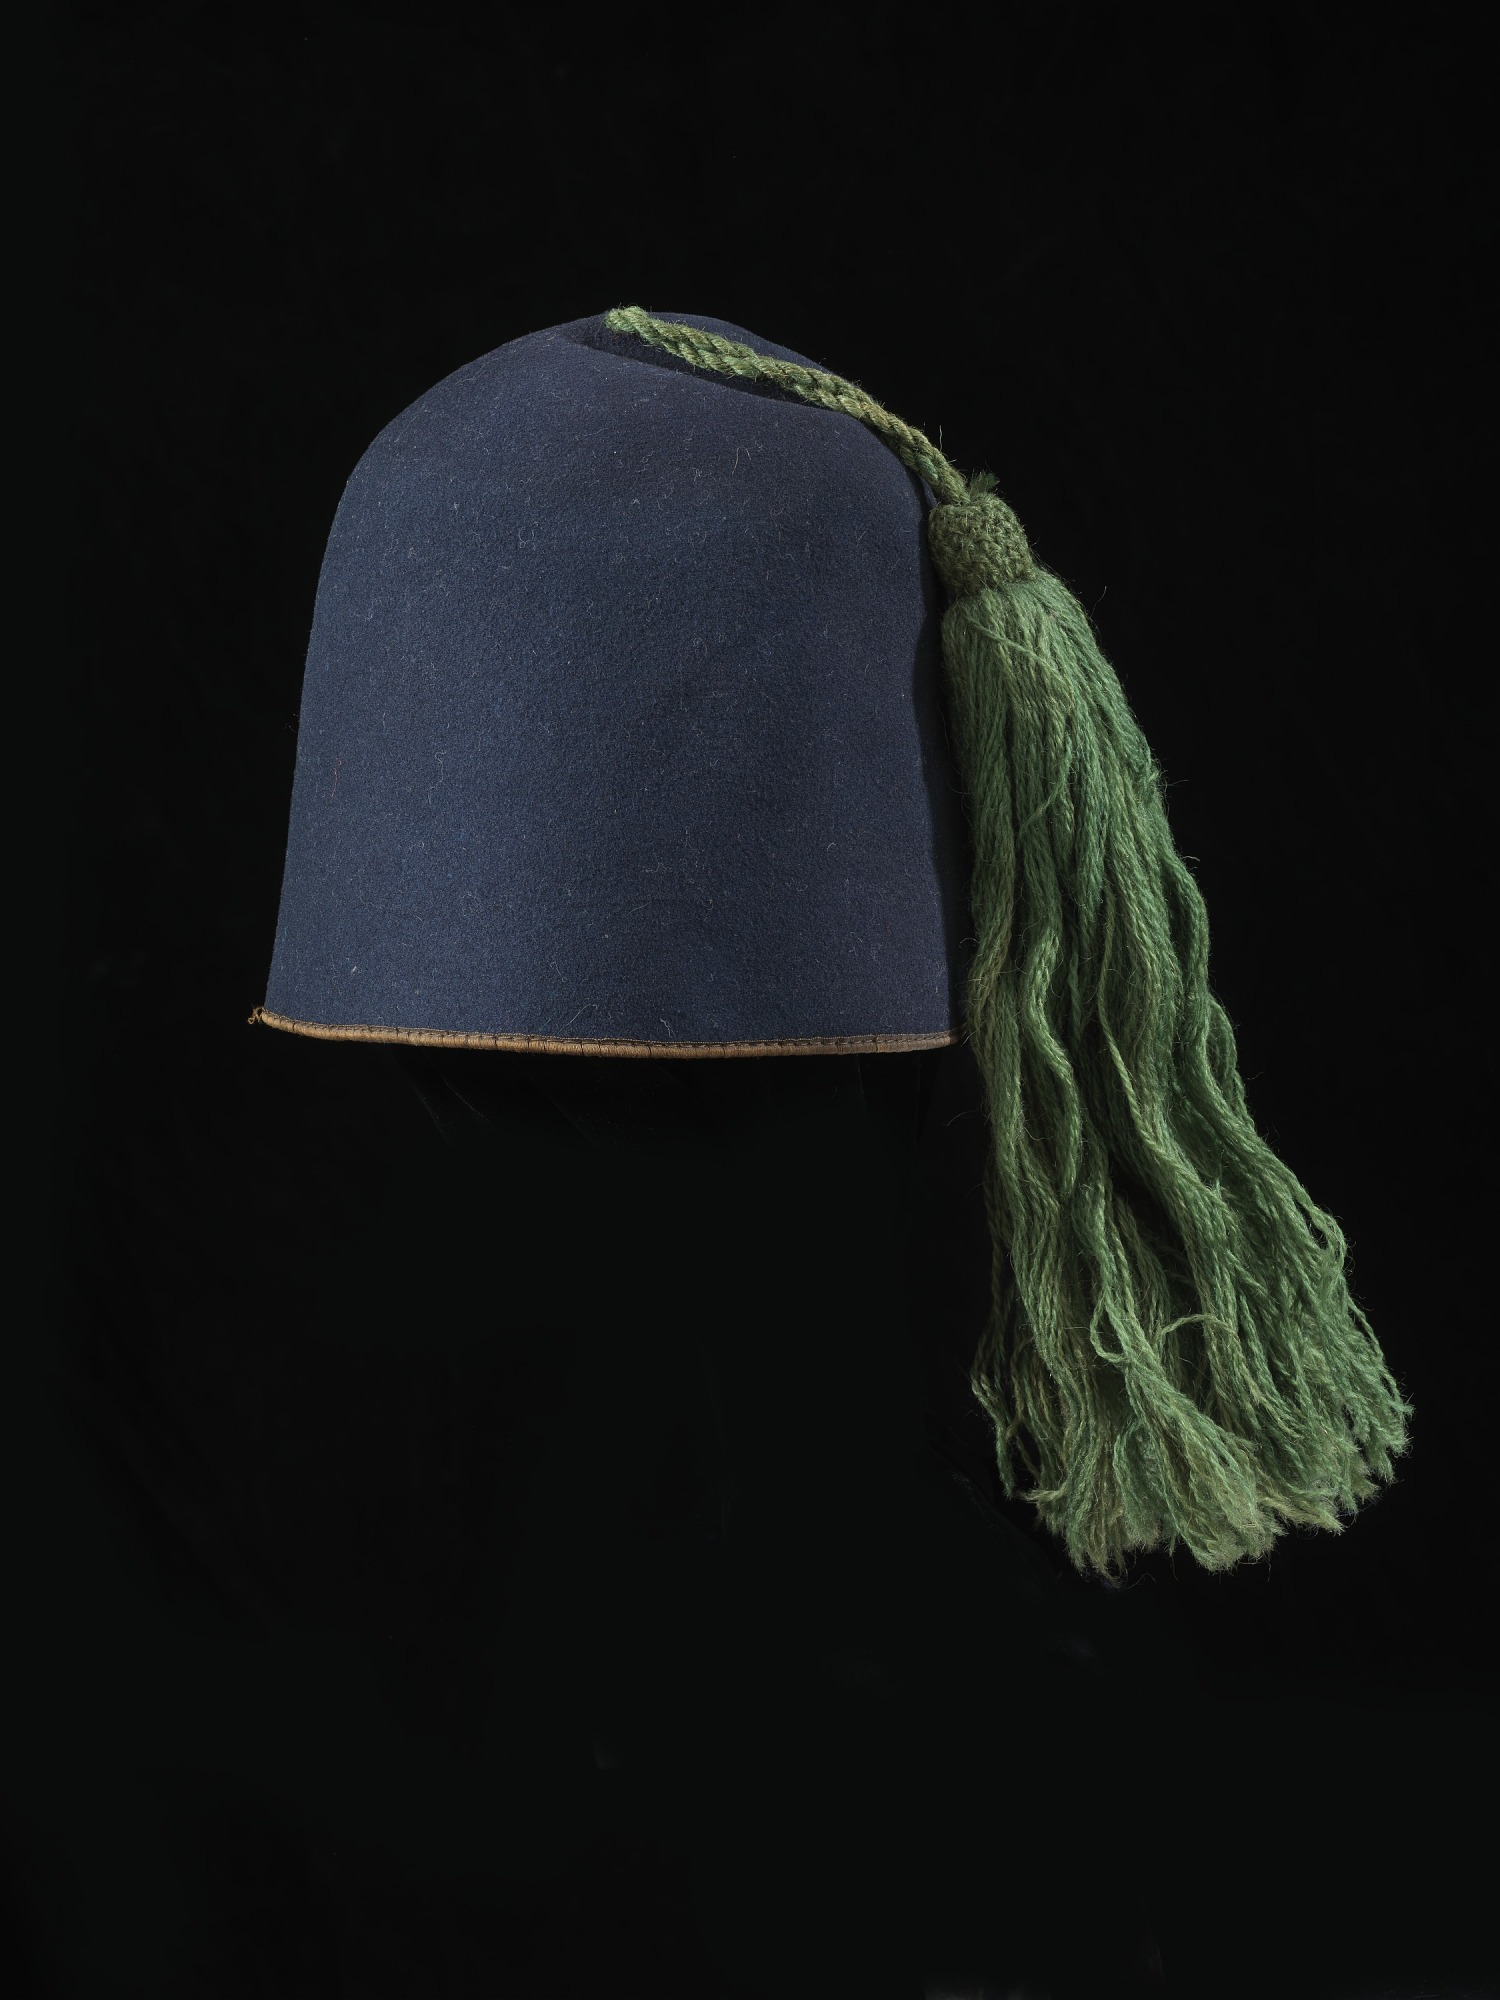 images for Zouave Fez